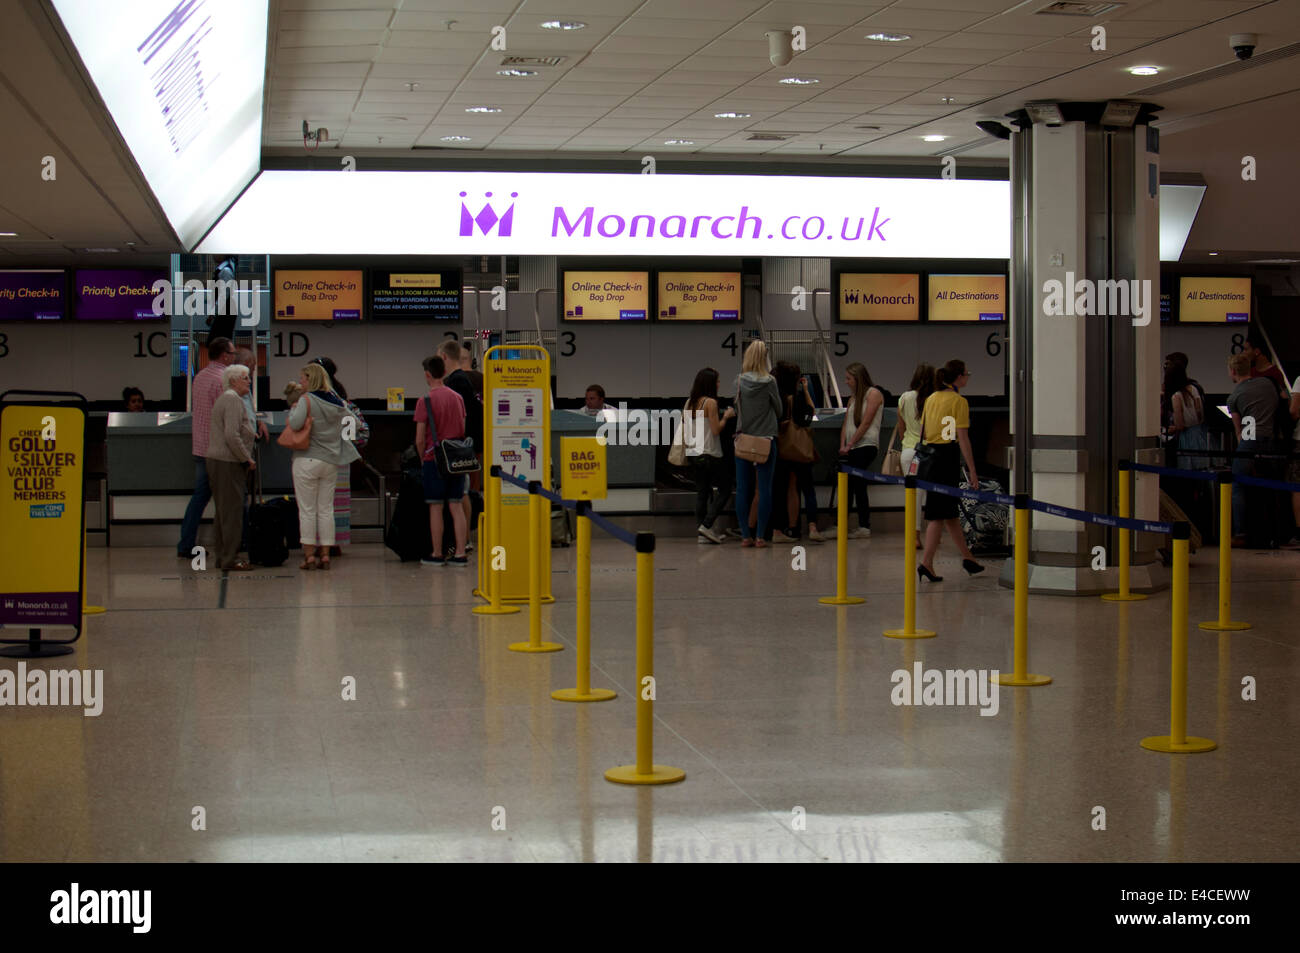 Monarch Check In Desks Birmingham Airport Uk Stock Photo